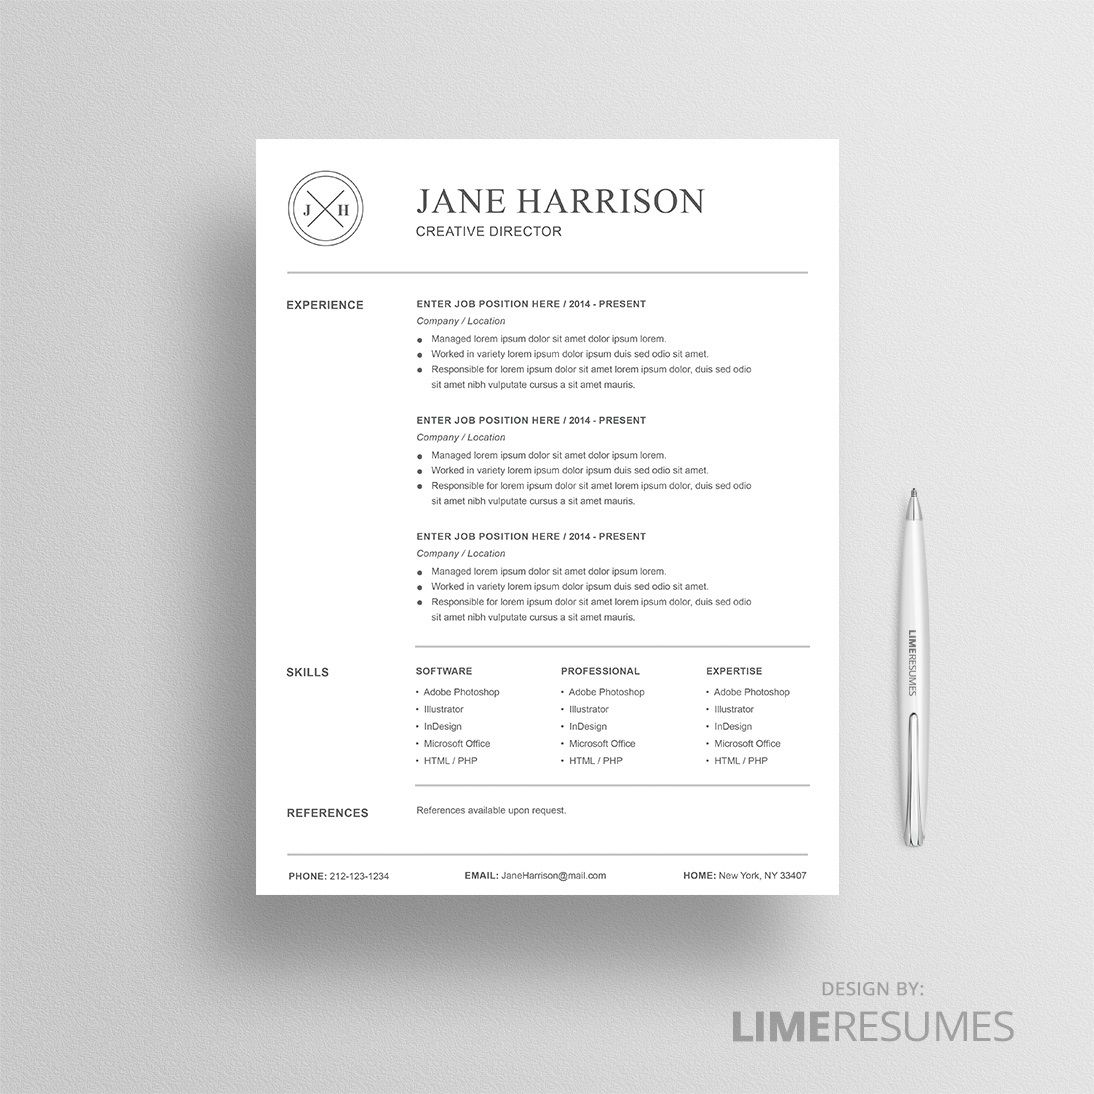 008 Beautiful Resume Reference List Template Microsoft Word High Resolution Full